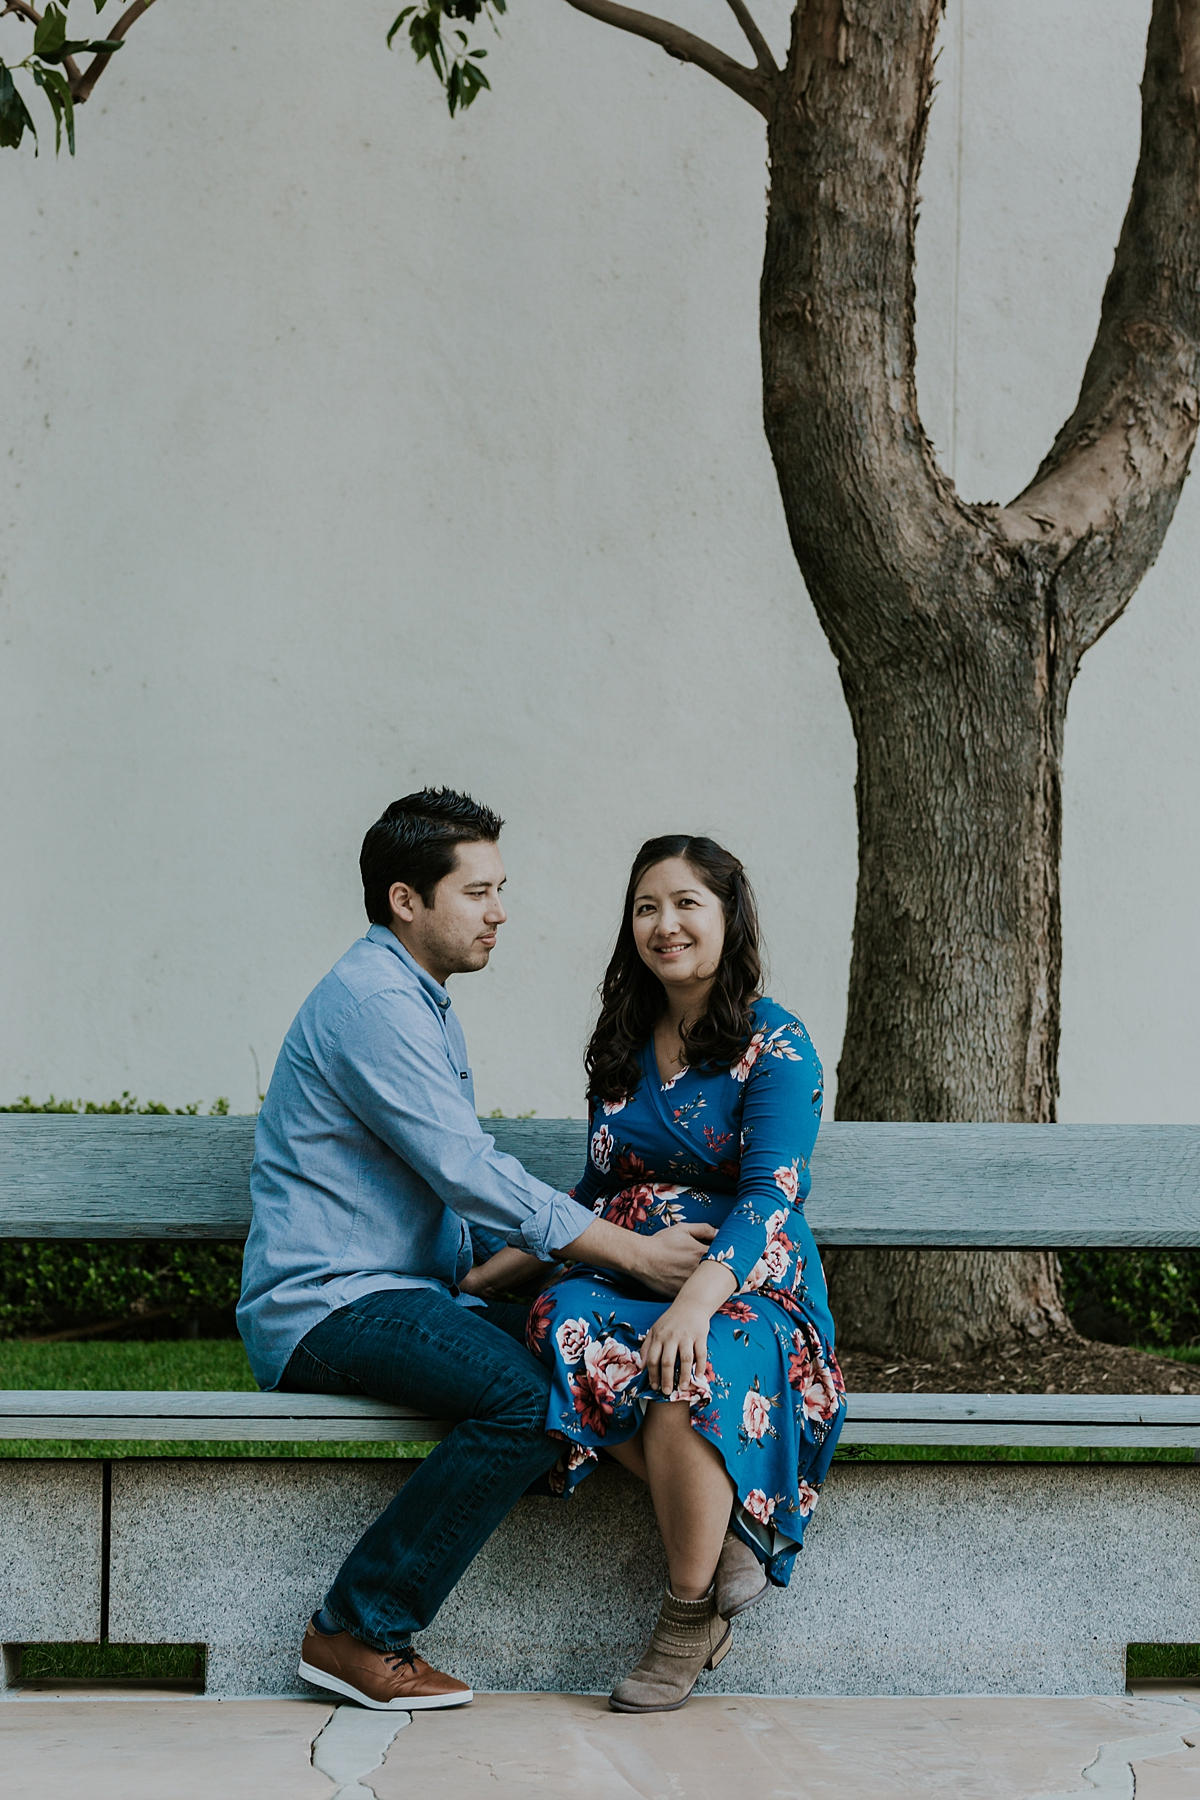 Orange County family photographer. Photo of couple casually sitting on park bench during maternity photo shoot at Noguchi Garden Costa Mesa